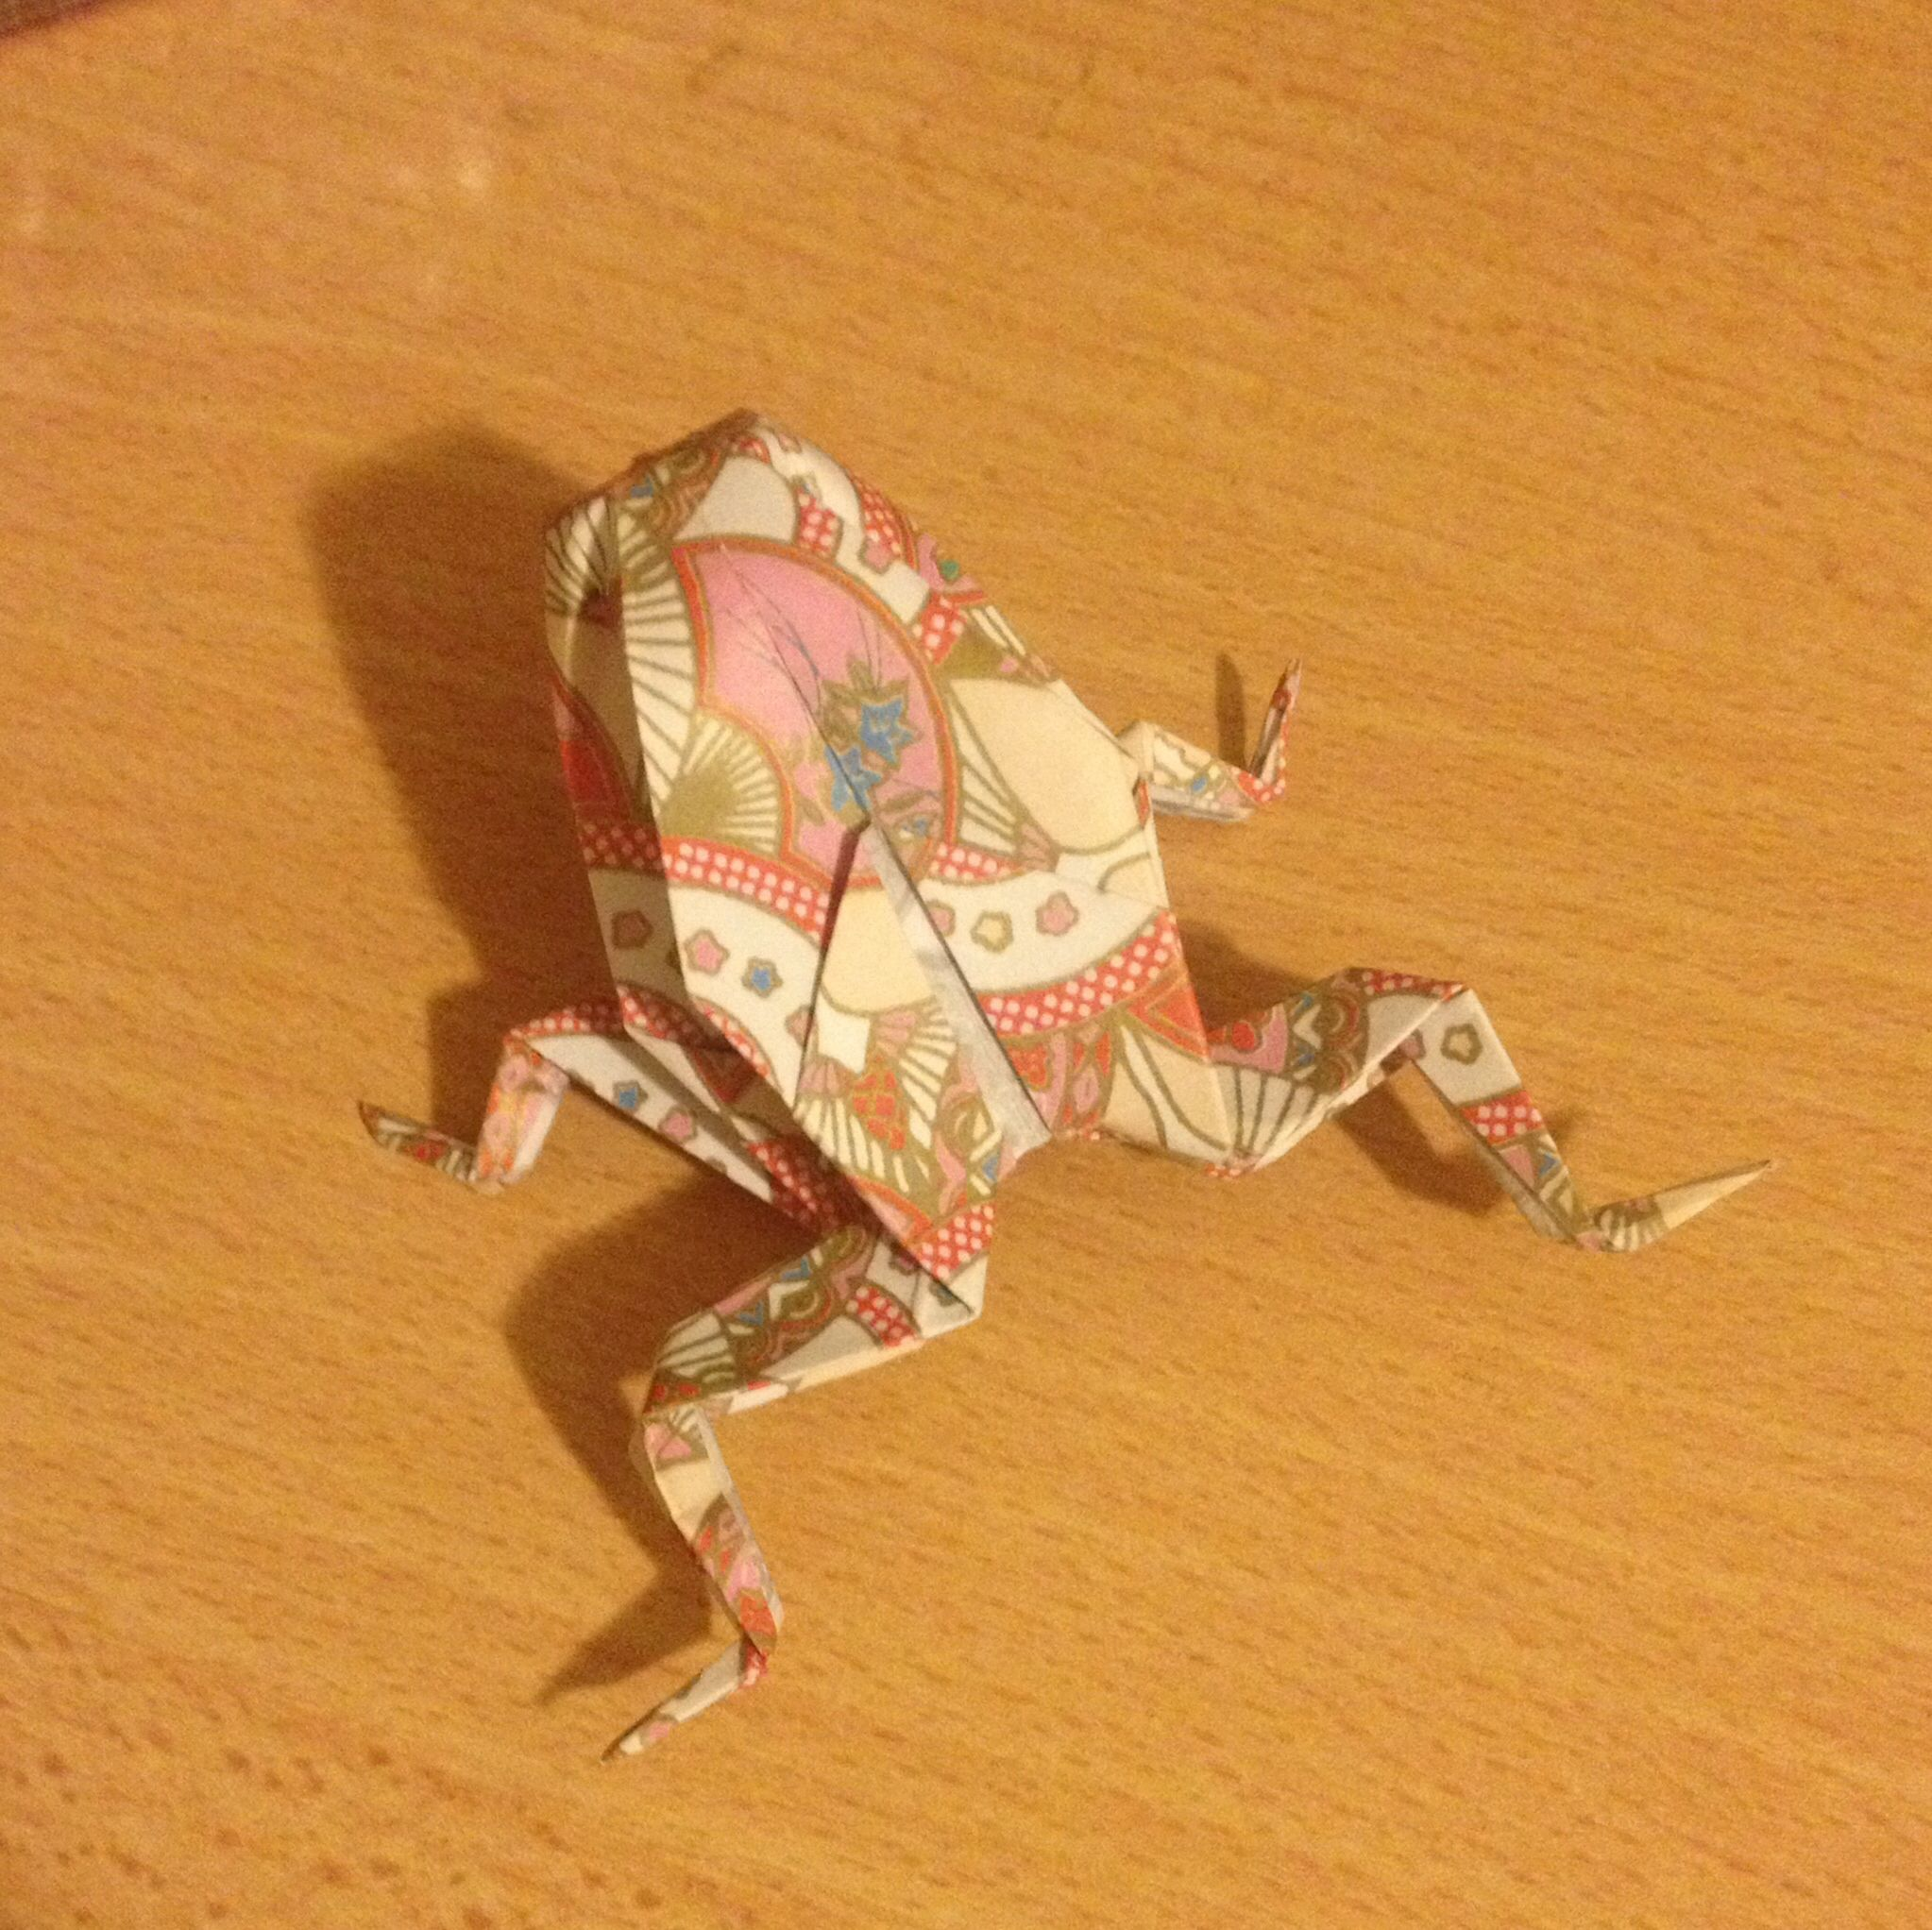 Traditional origami frog origami pinterest origami frog traditional origami frog jeuxipadfo Image collections